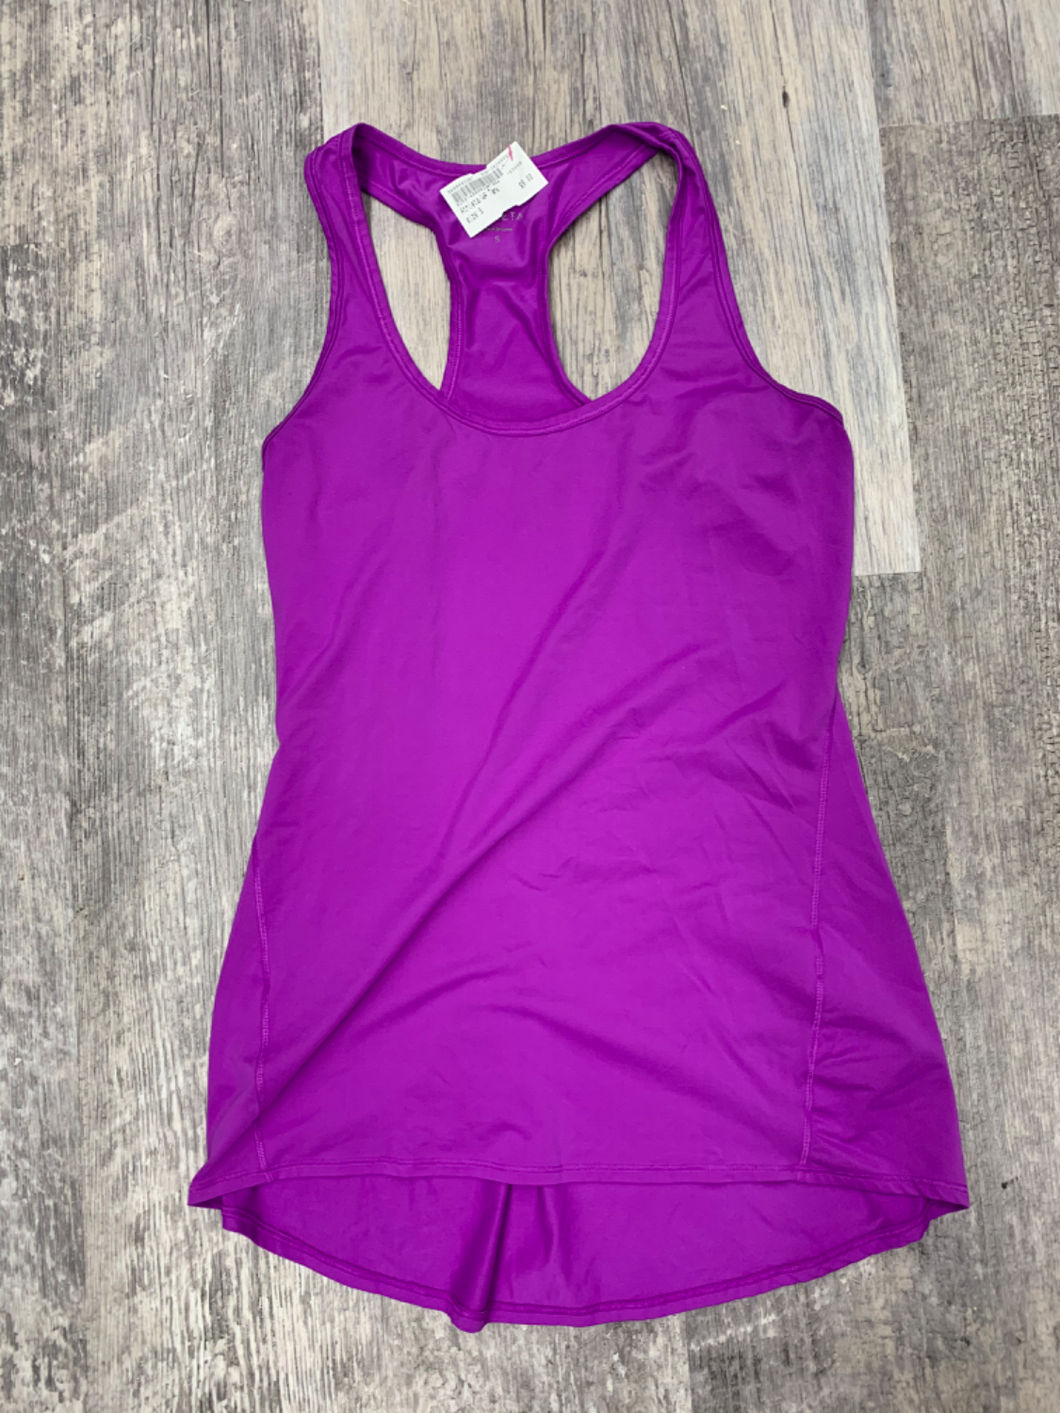 Athleta Athletic Top Size Small